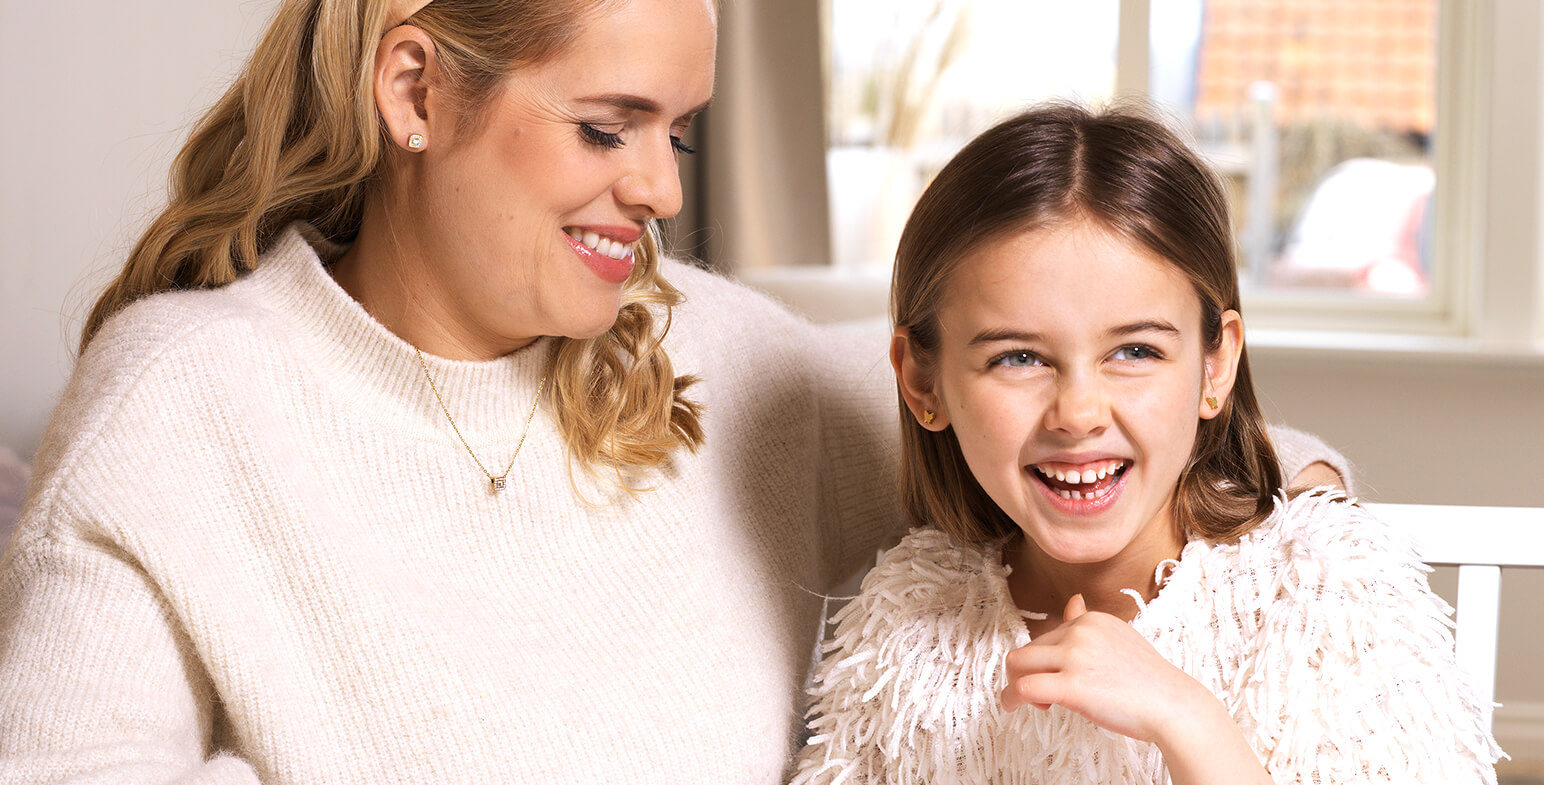 Mother & Daughter Wearing Blomdahl Earrings And Smiling